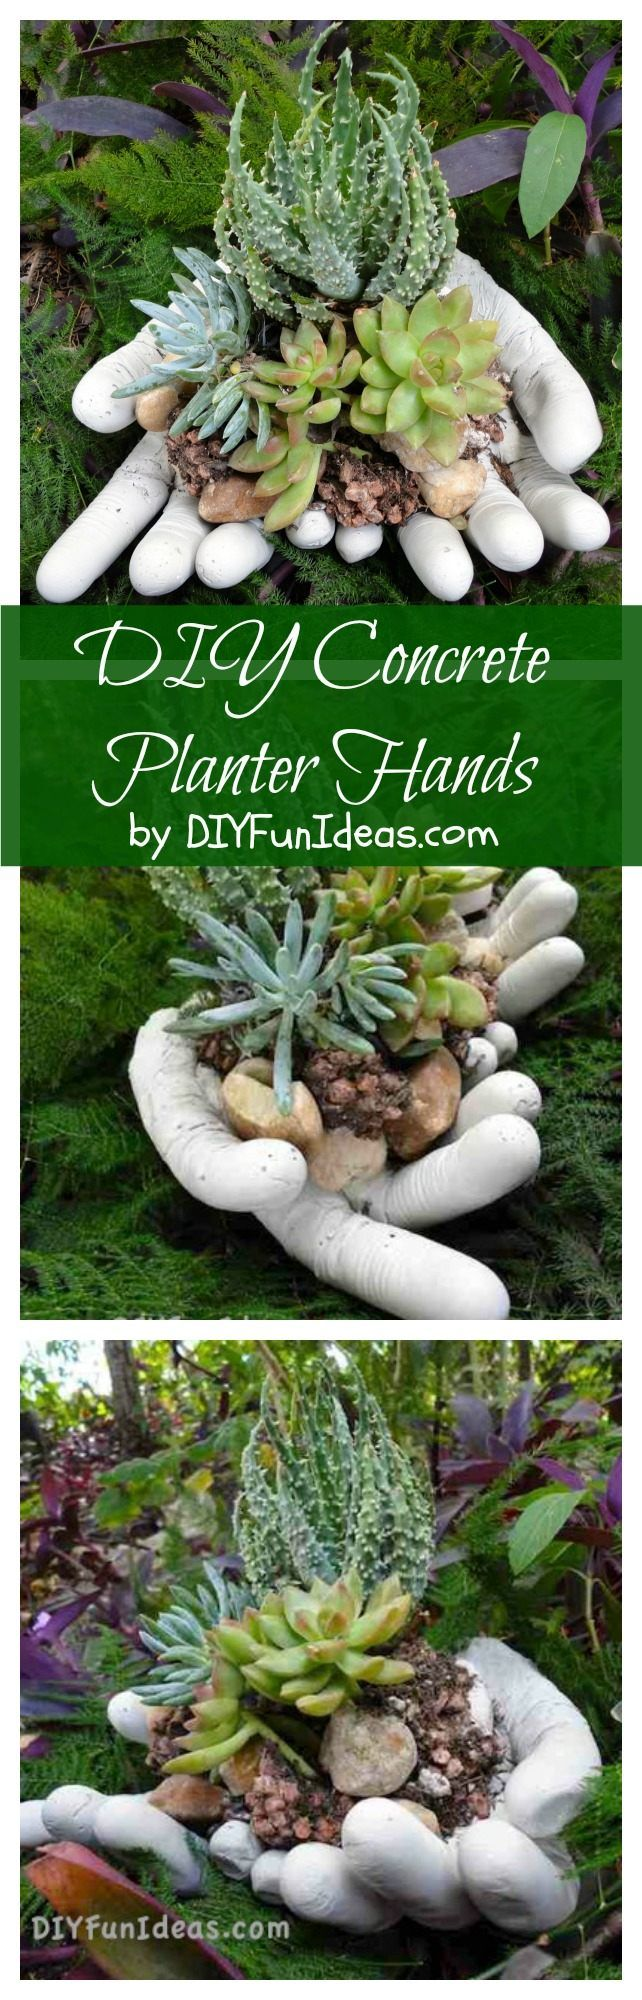 DIY concrete planter hands